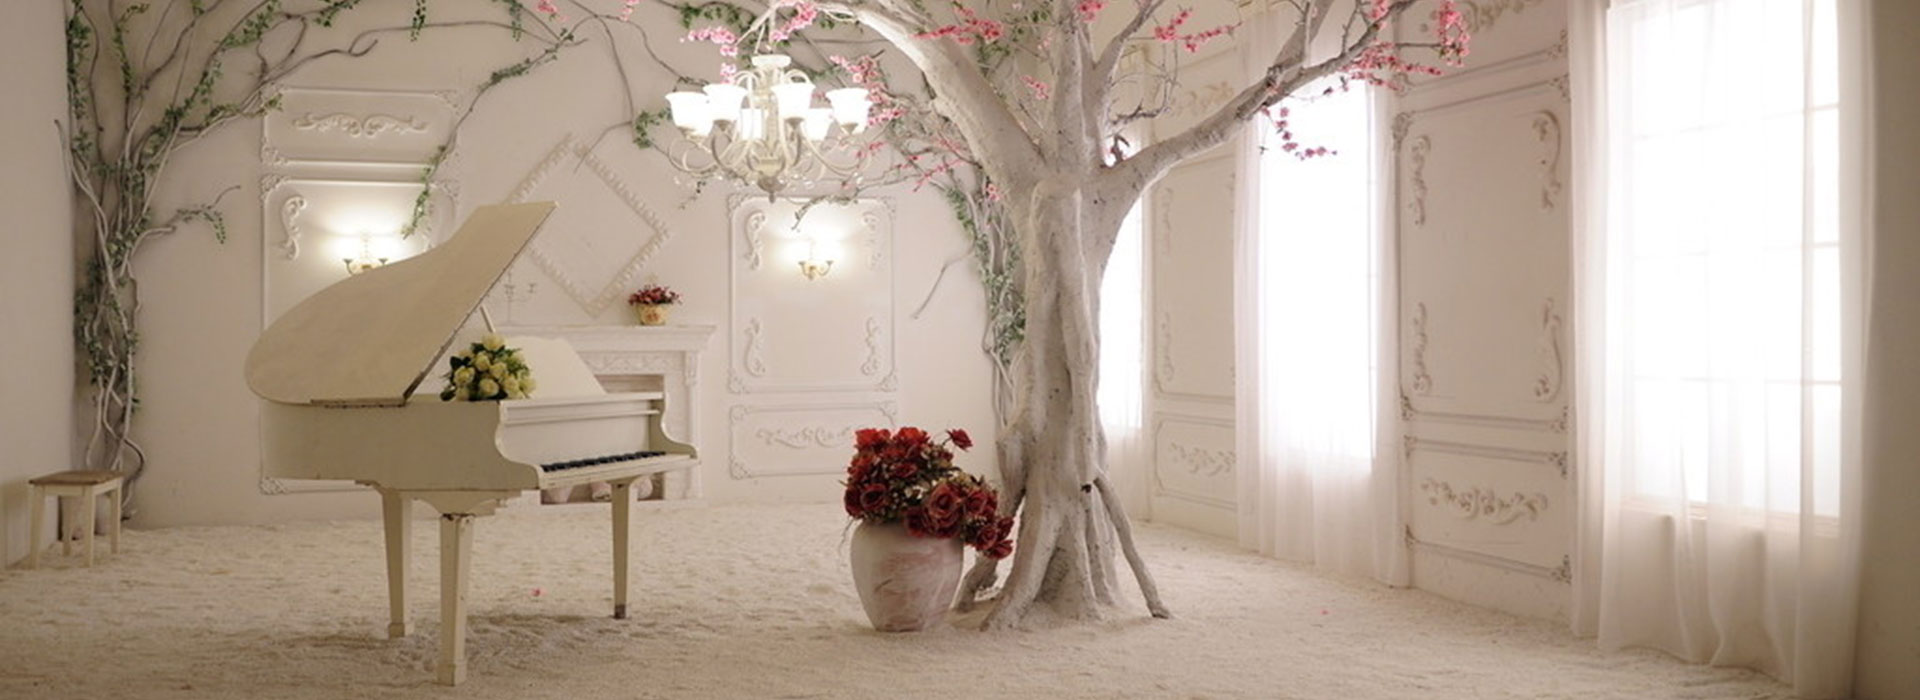 continental romantic aesthetic background  piano  window